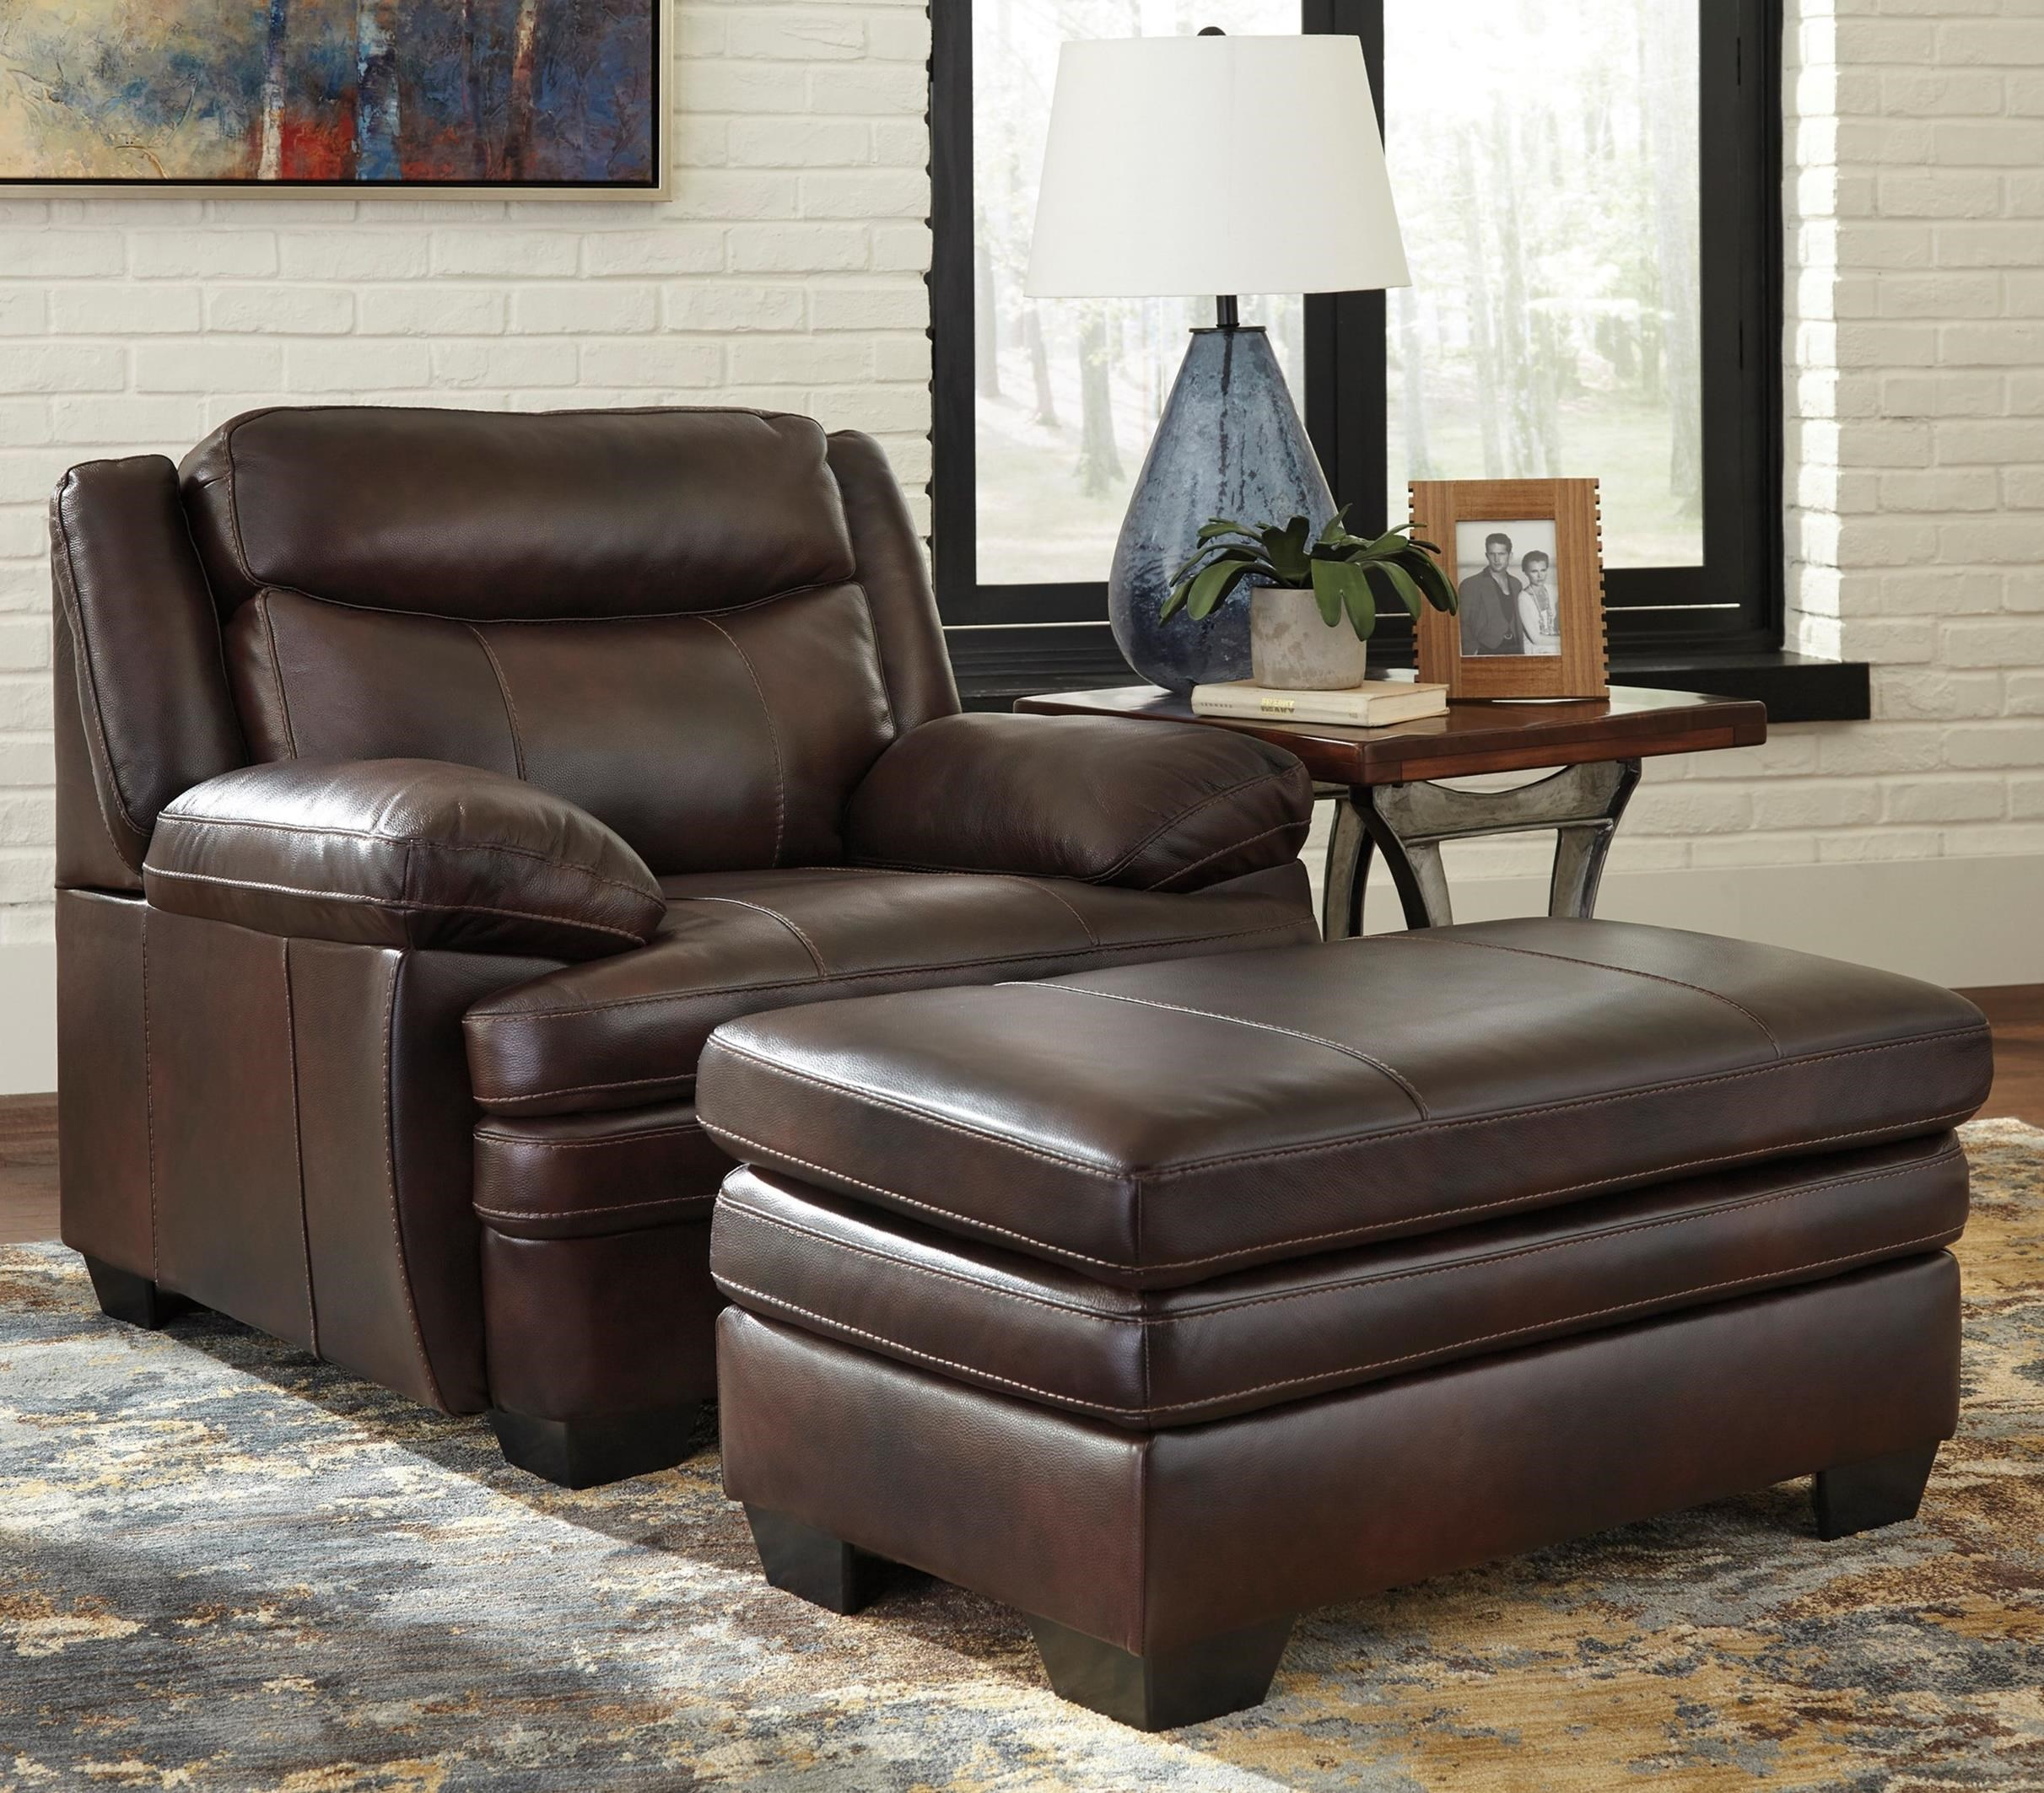 Signature Design By Ashley Hannalore Contemporary Leather Match Chair Ottoman Furniture And